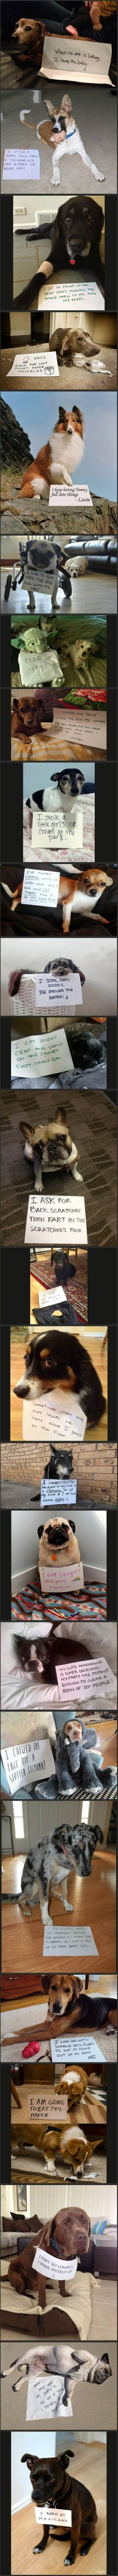 best puppy love images on pinterest funny dogs cutest animals